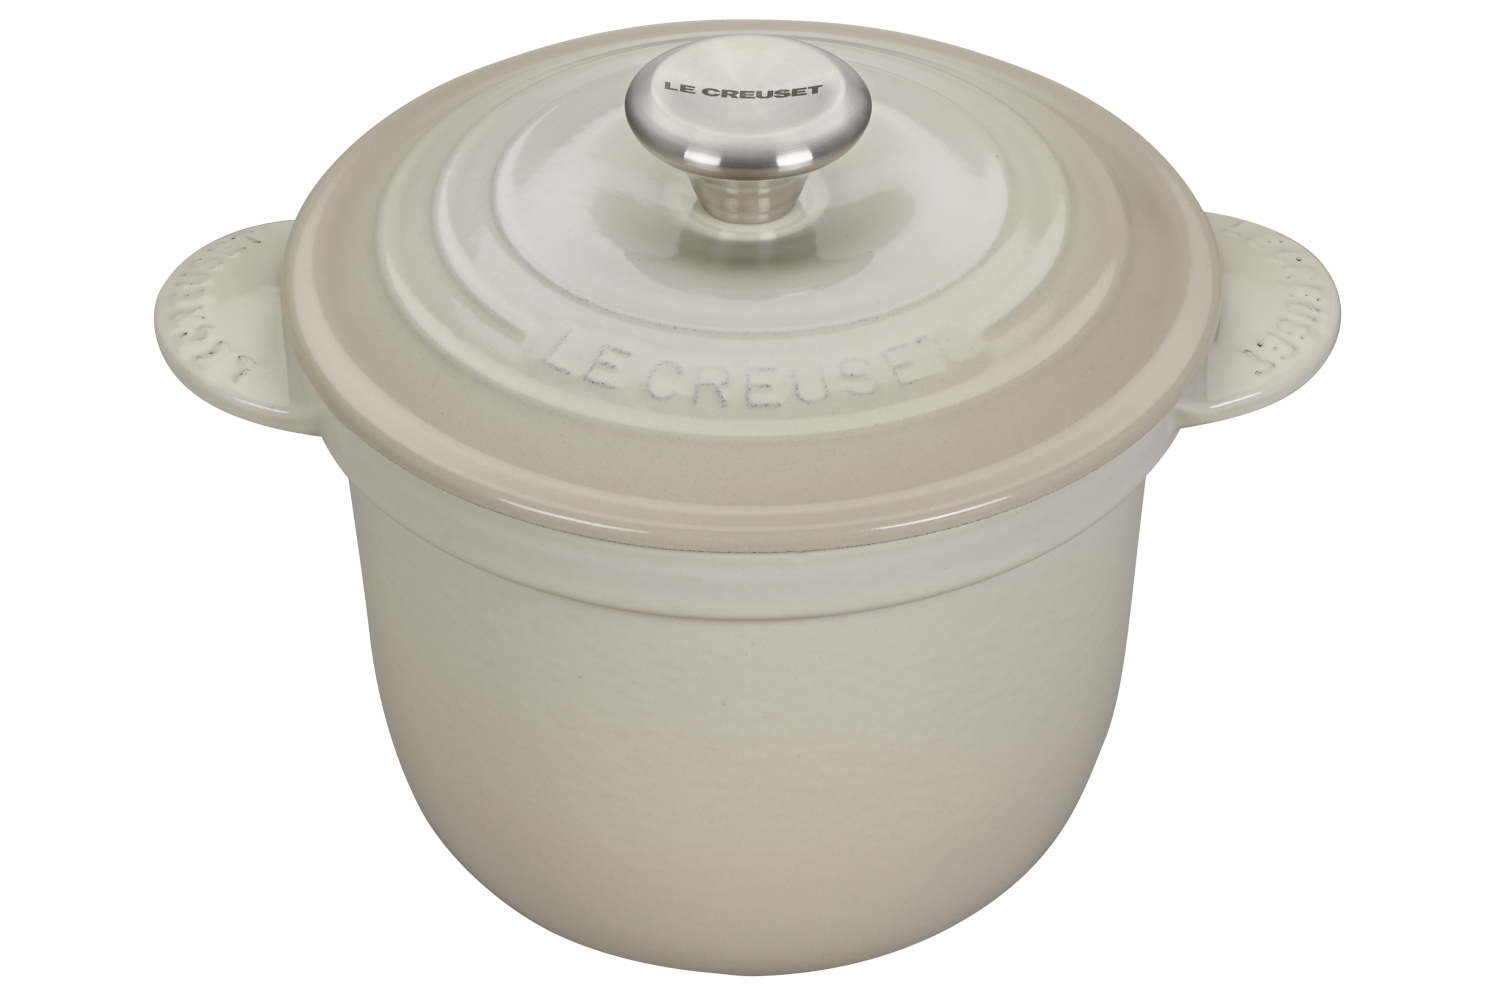 Le Creuset Enameled Cast Iron 2 1/4 qt. Rice Pot w/Insert - Meringue